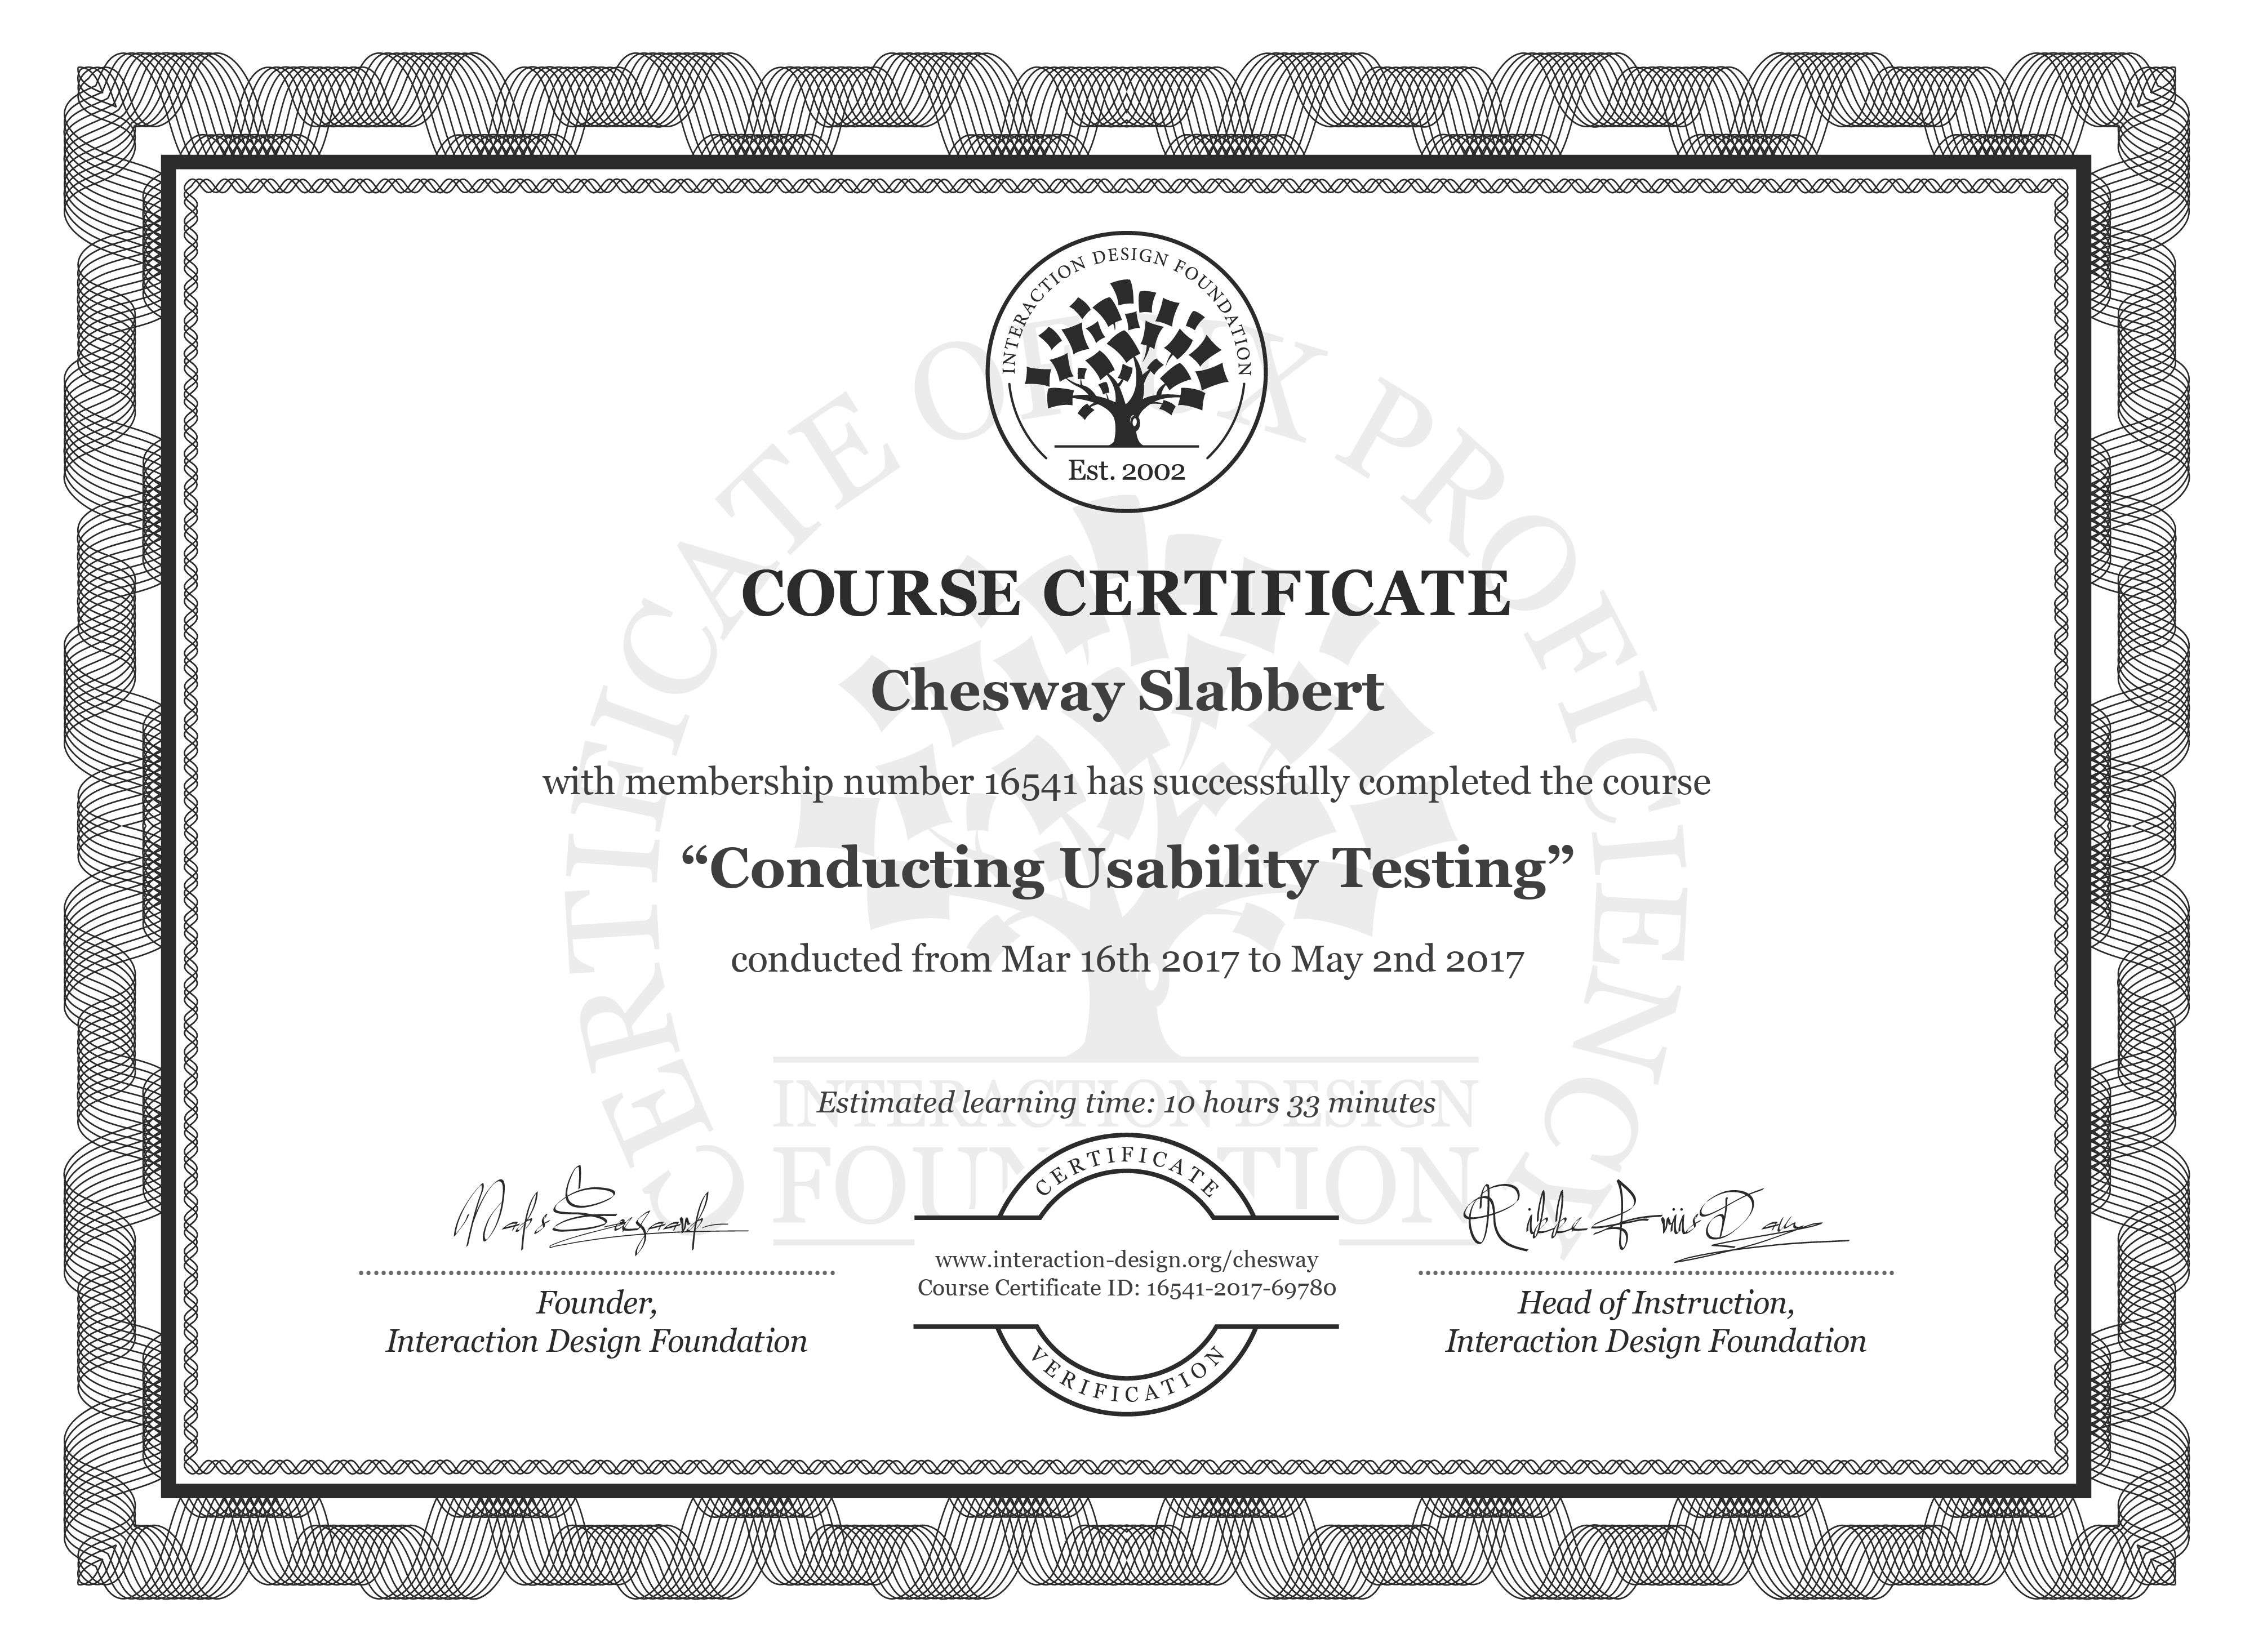 Chesway Slabbert's Course Certificate: Conducting Usability Testing